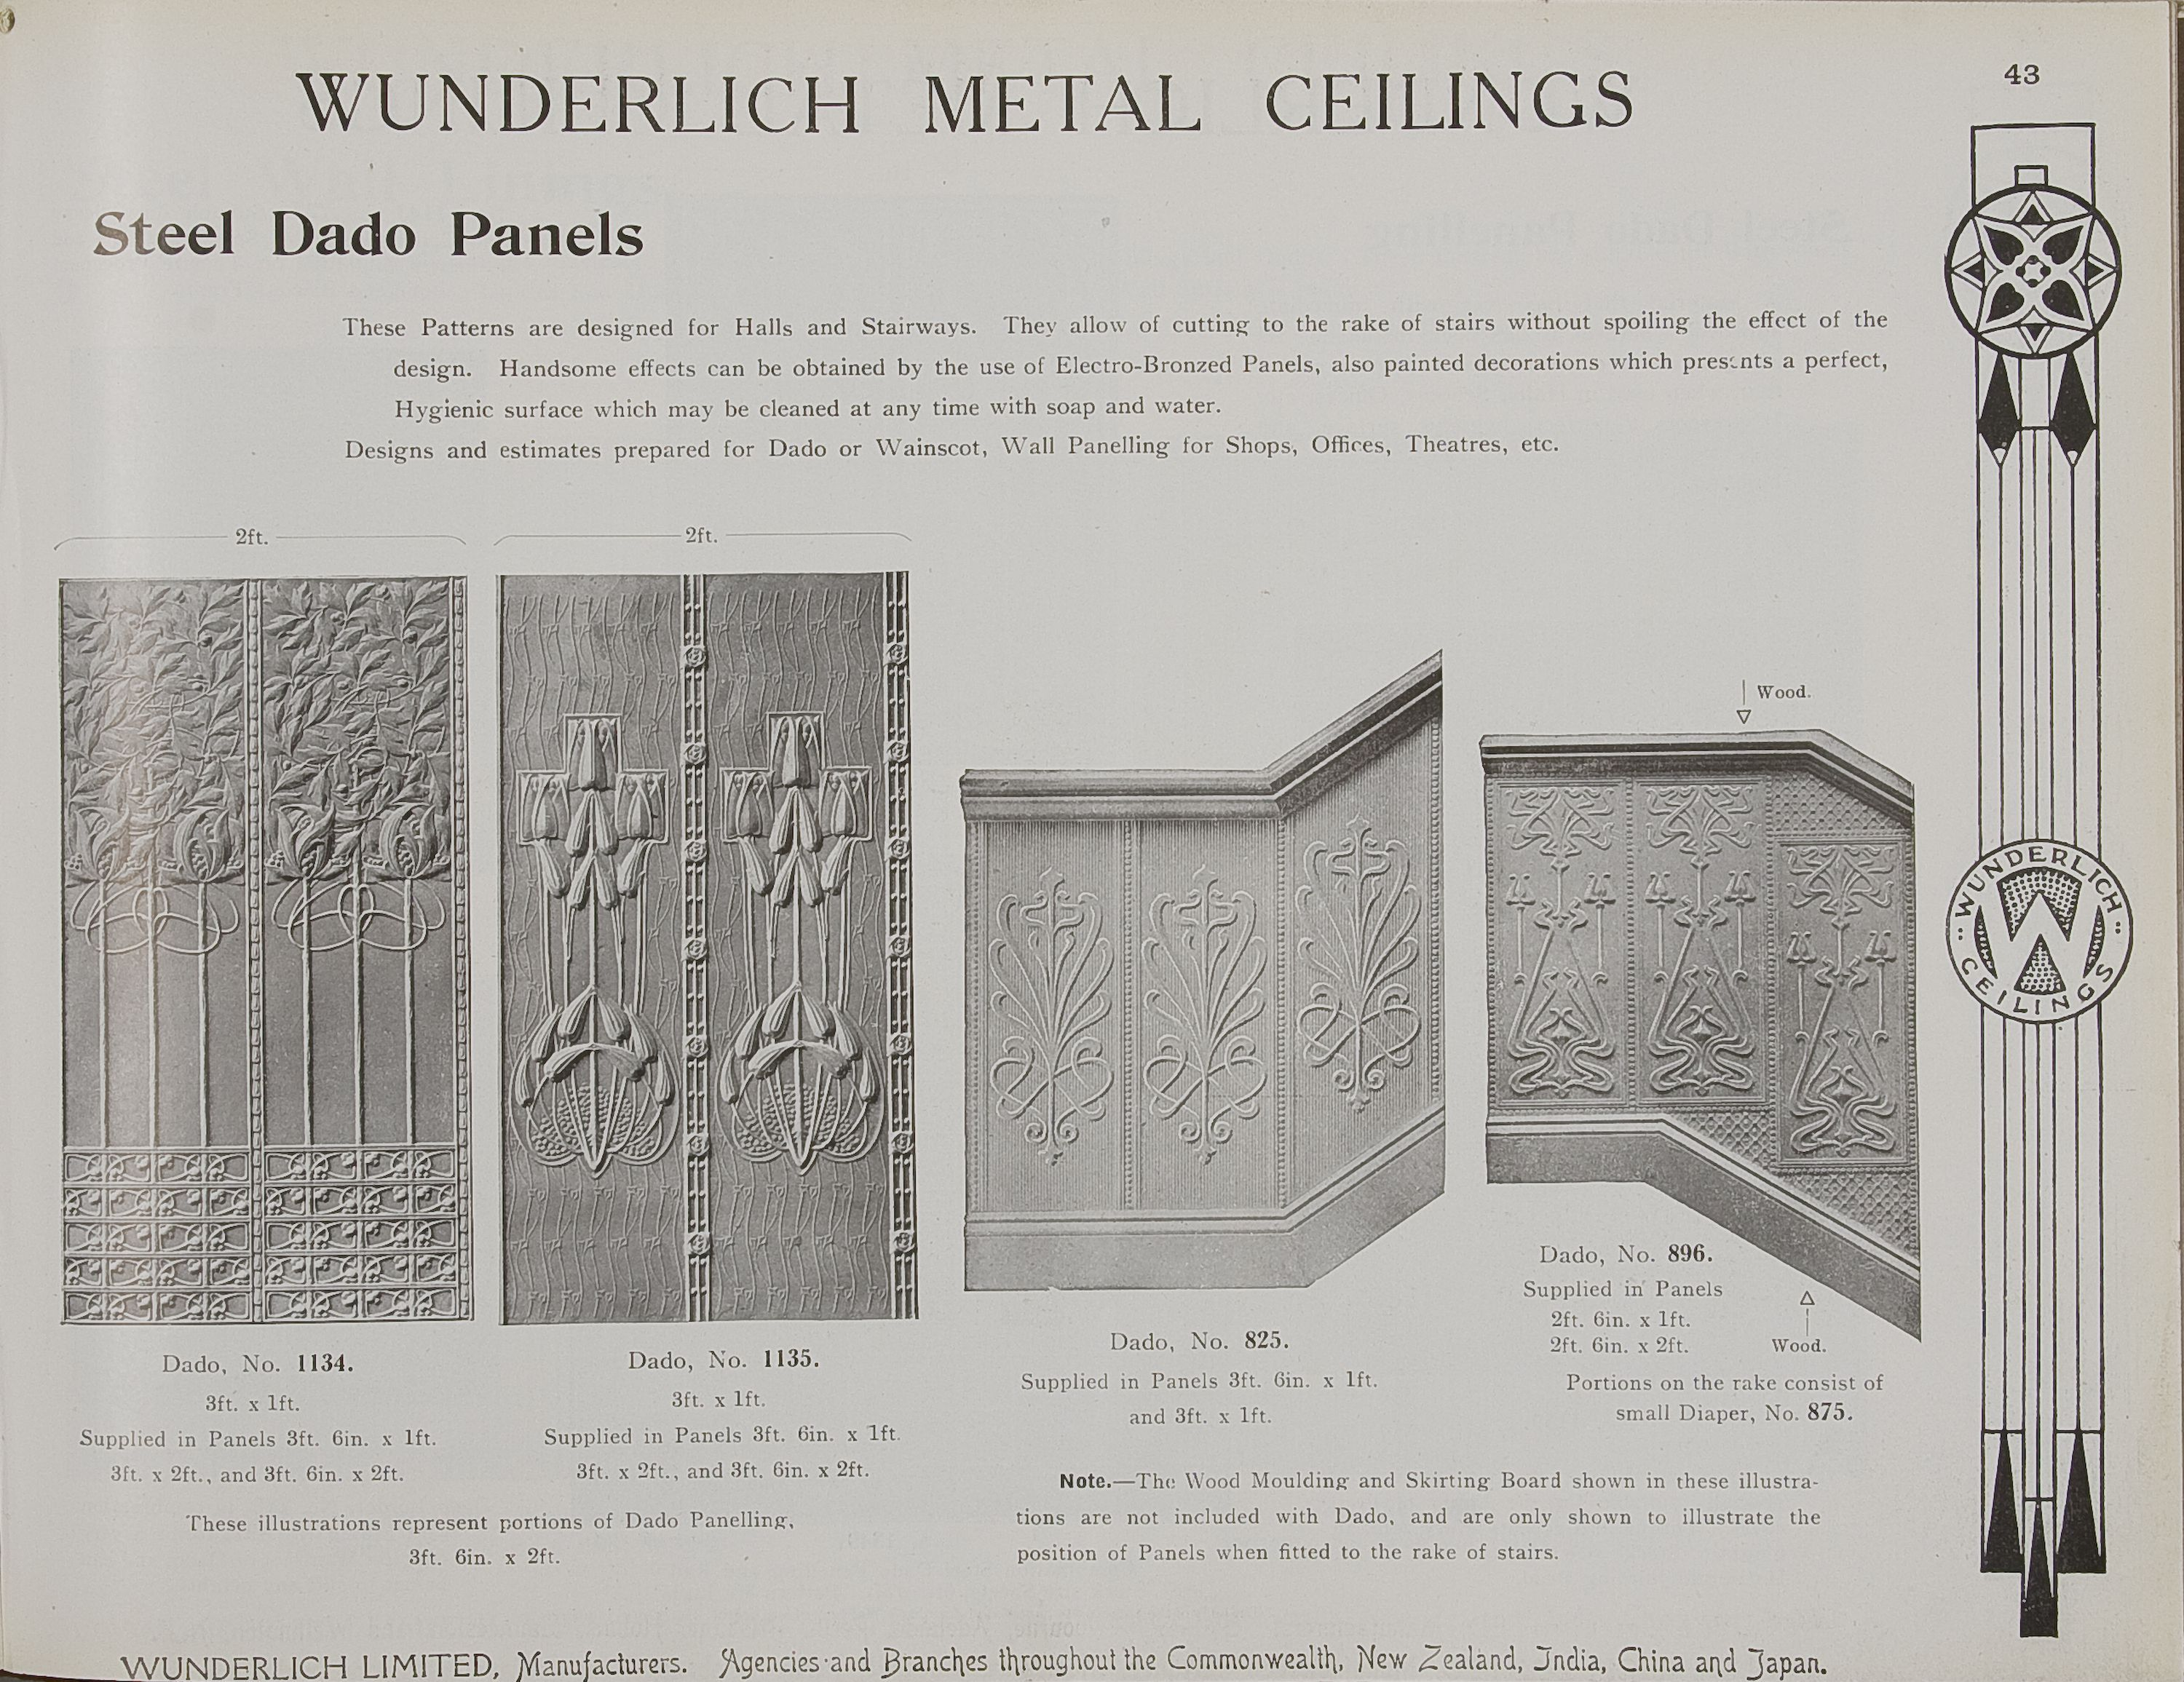 Catalogue page, page 43 of 'Abridged General Catalogue of Metal Ceilings, Wall Linings and Stamped Metal for Exterior and Interior Decoration', Wunderlich Limited, Redfern, New South Wales, Australia, September 1912  Page 43 of 'Abridged General Catalogue of Metal Ceilings, Wall Linings and Stamped ...